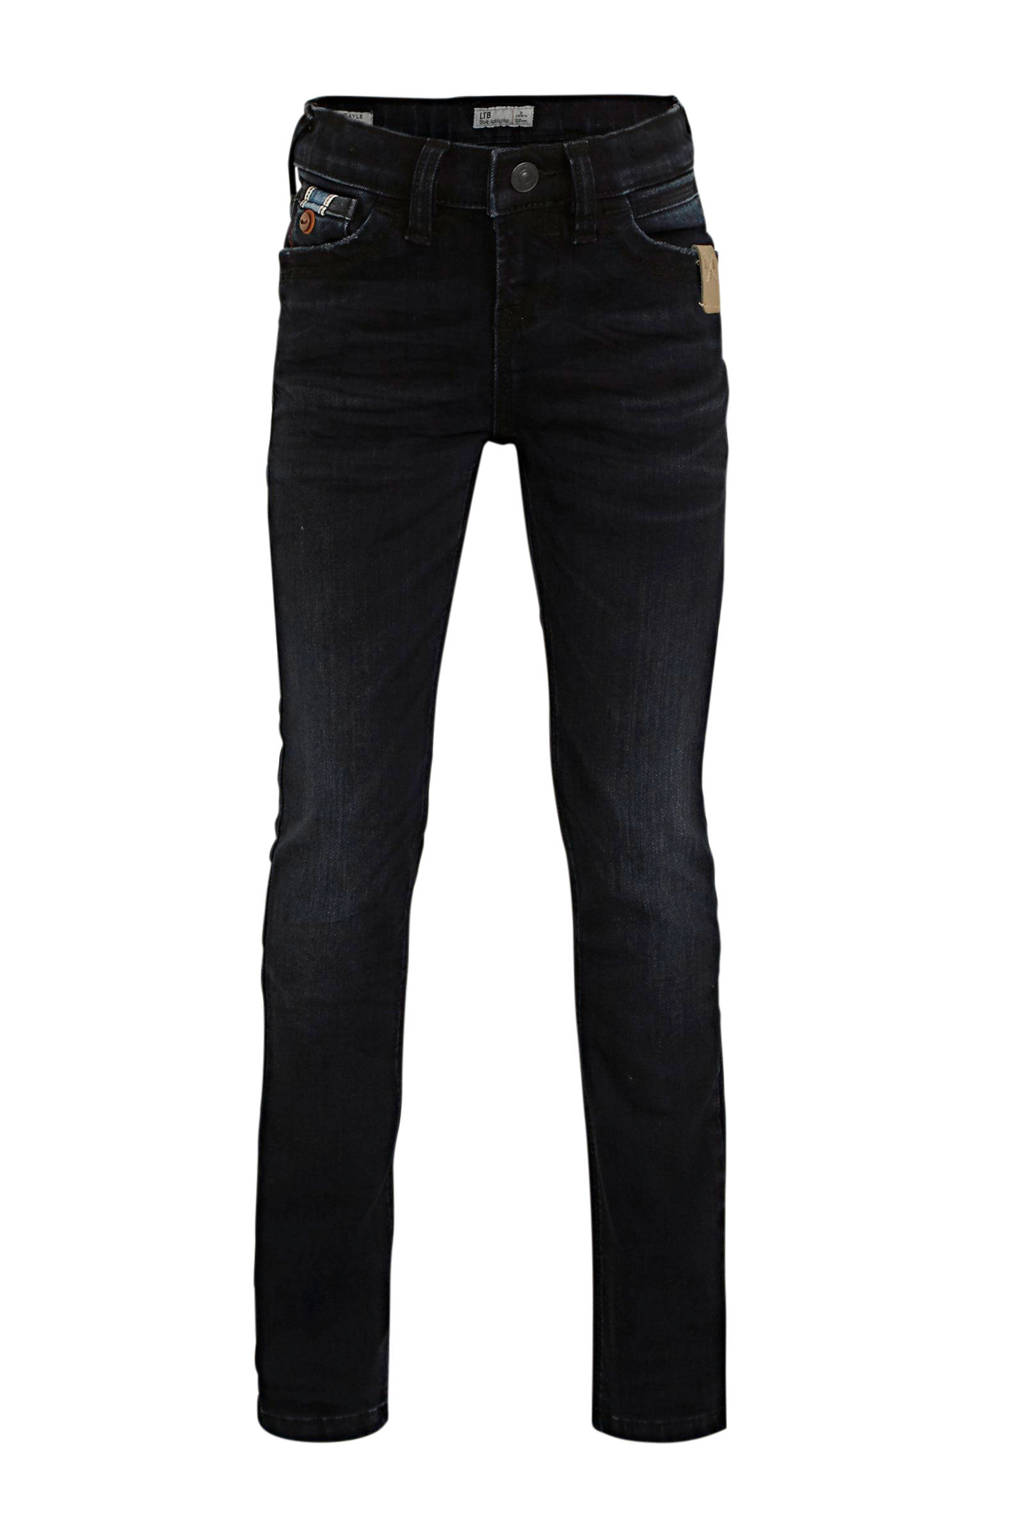 LTB skinny jeans Cayle tailor wash, Tailor wash